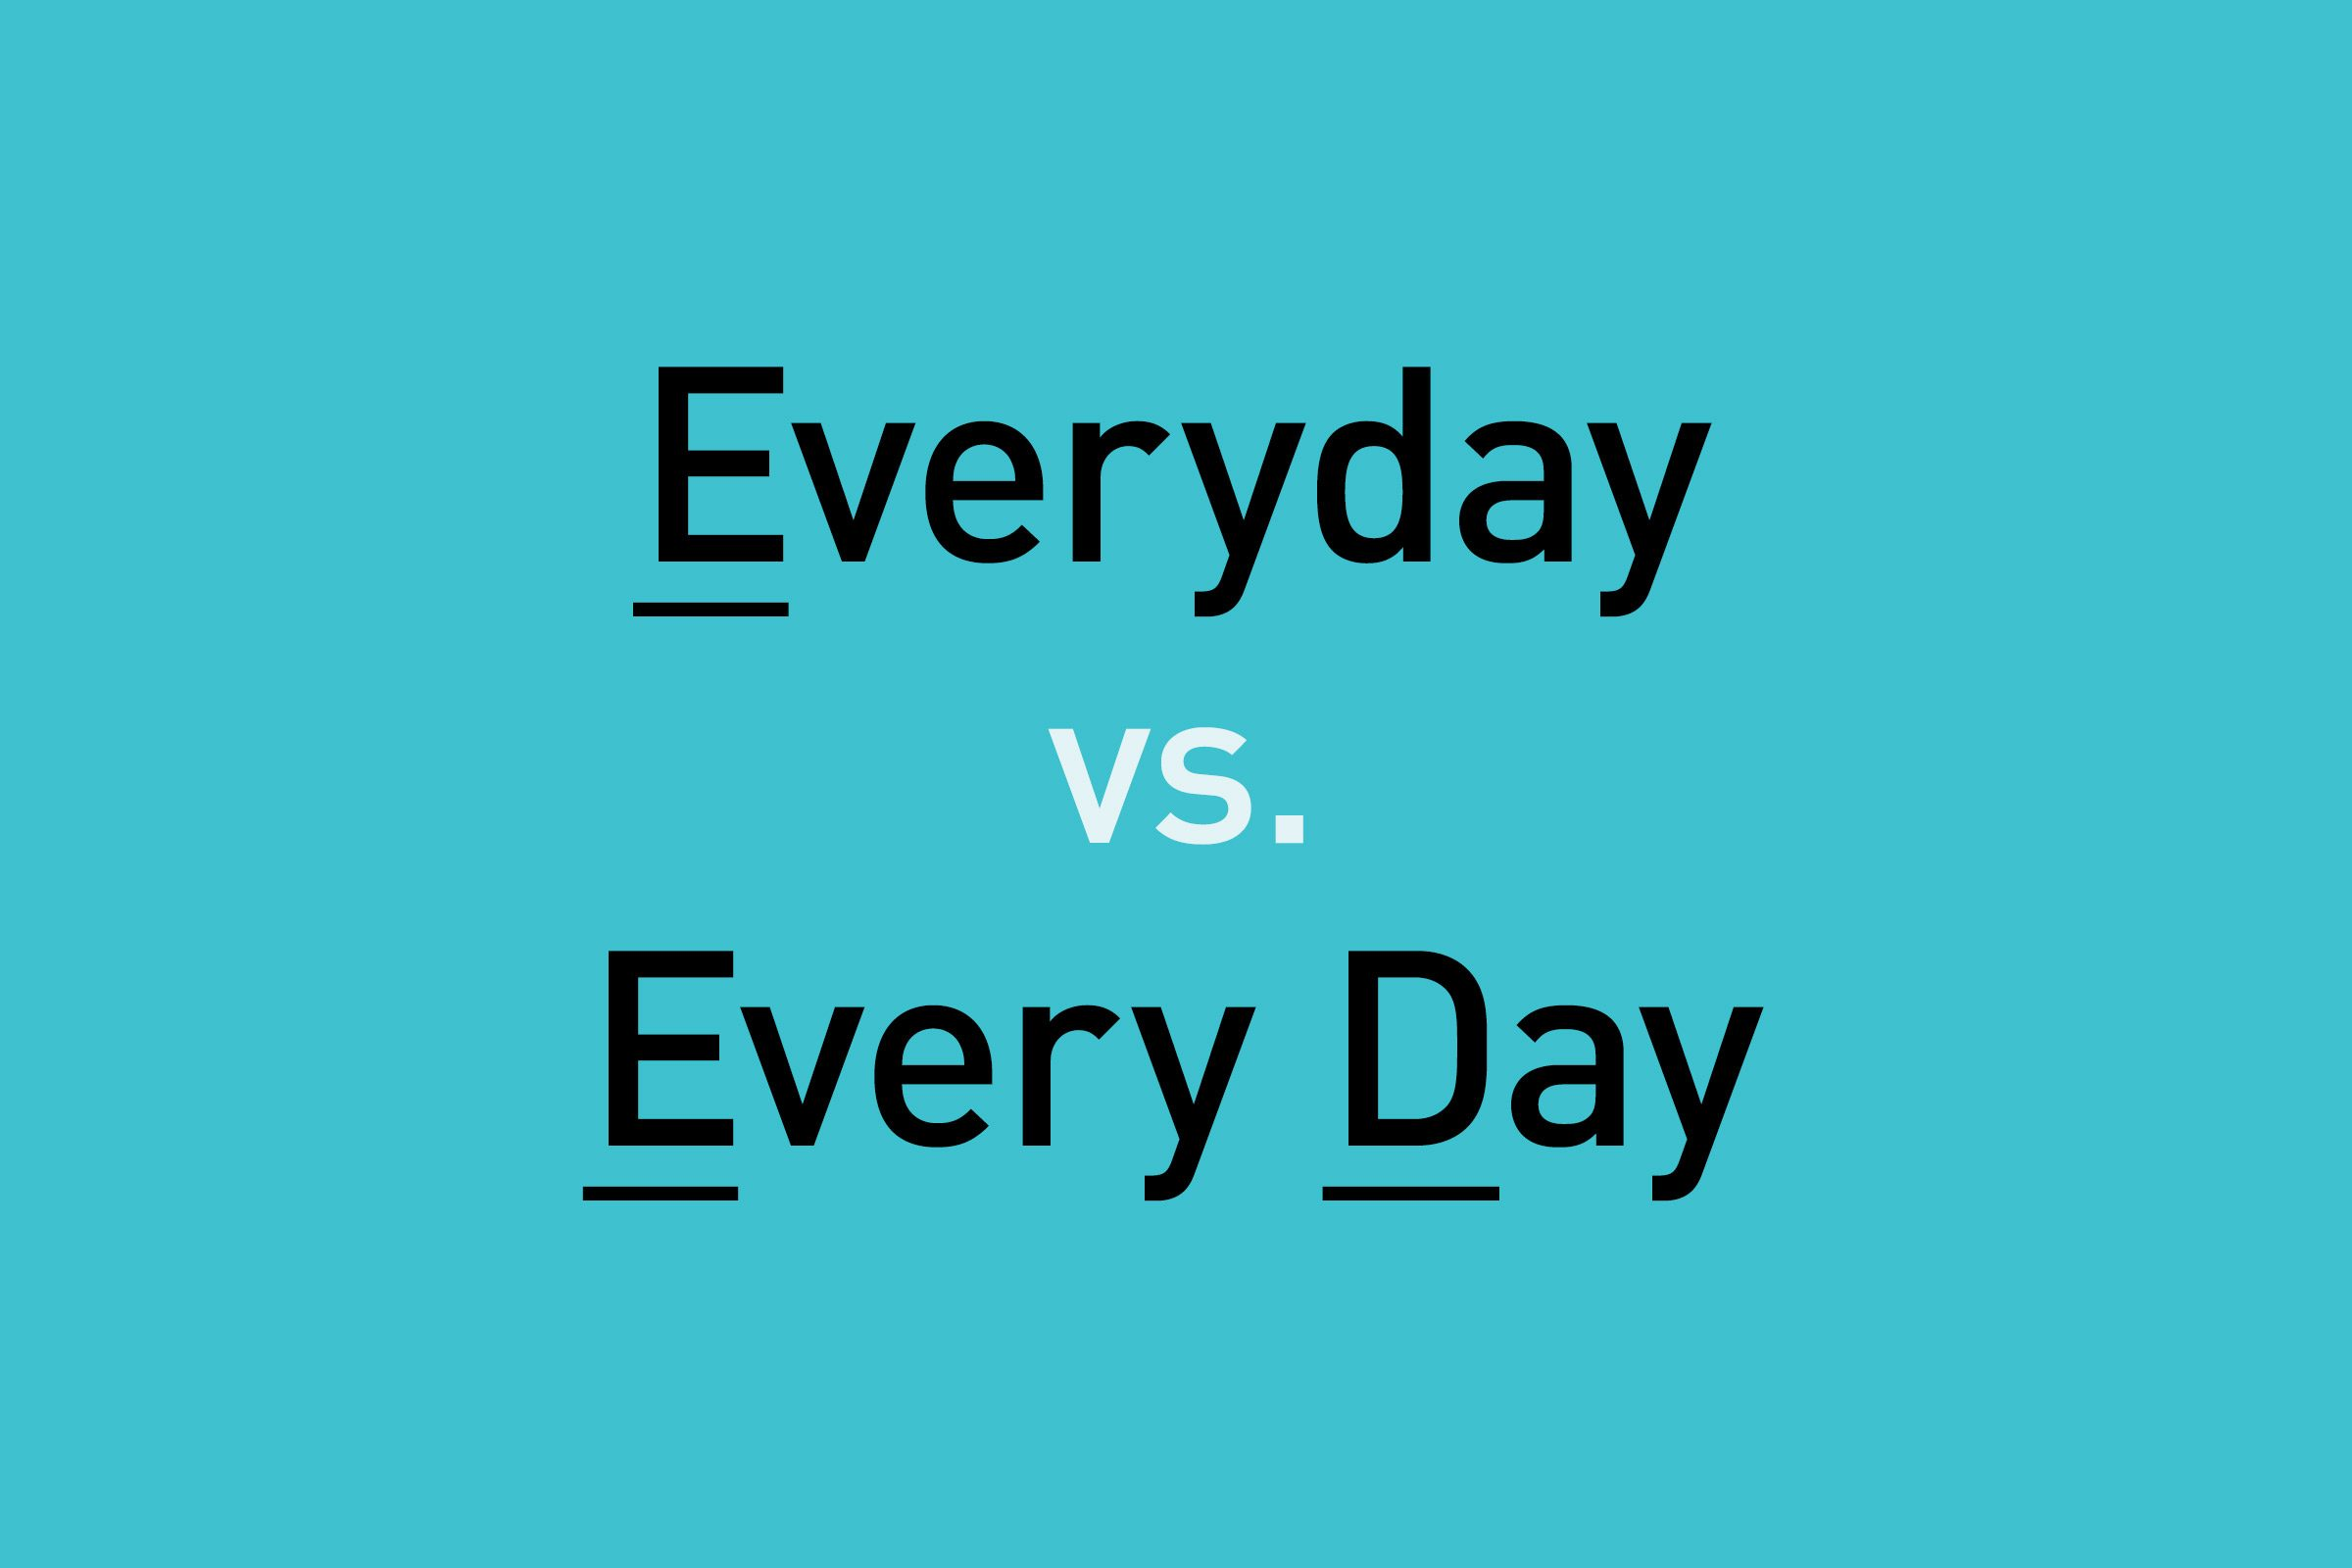 text: everyday vs. every day